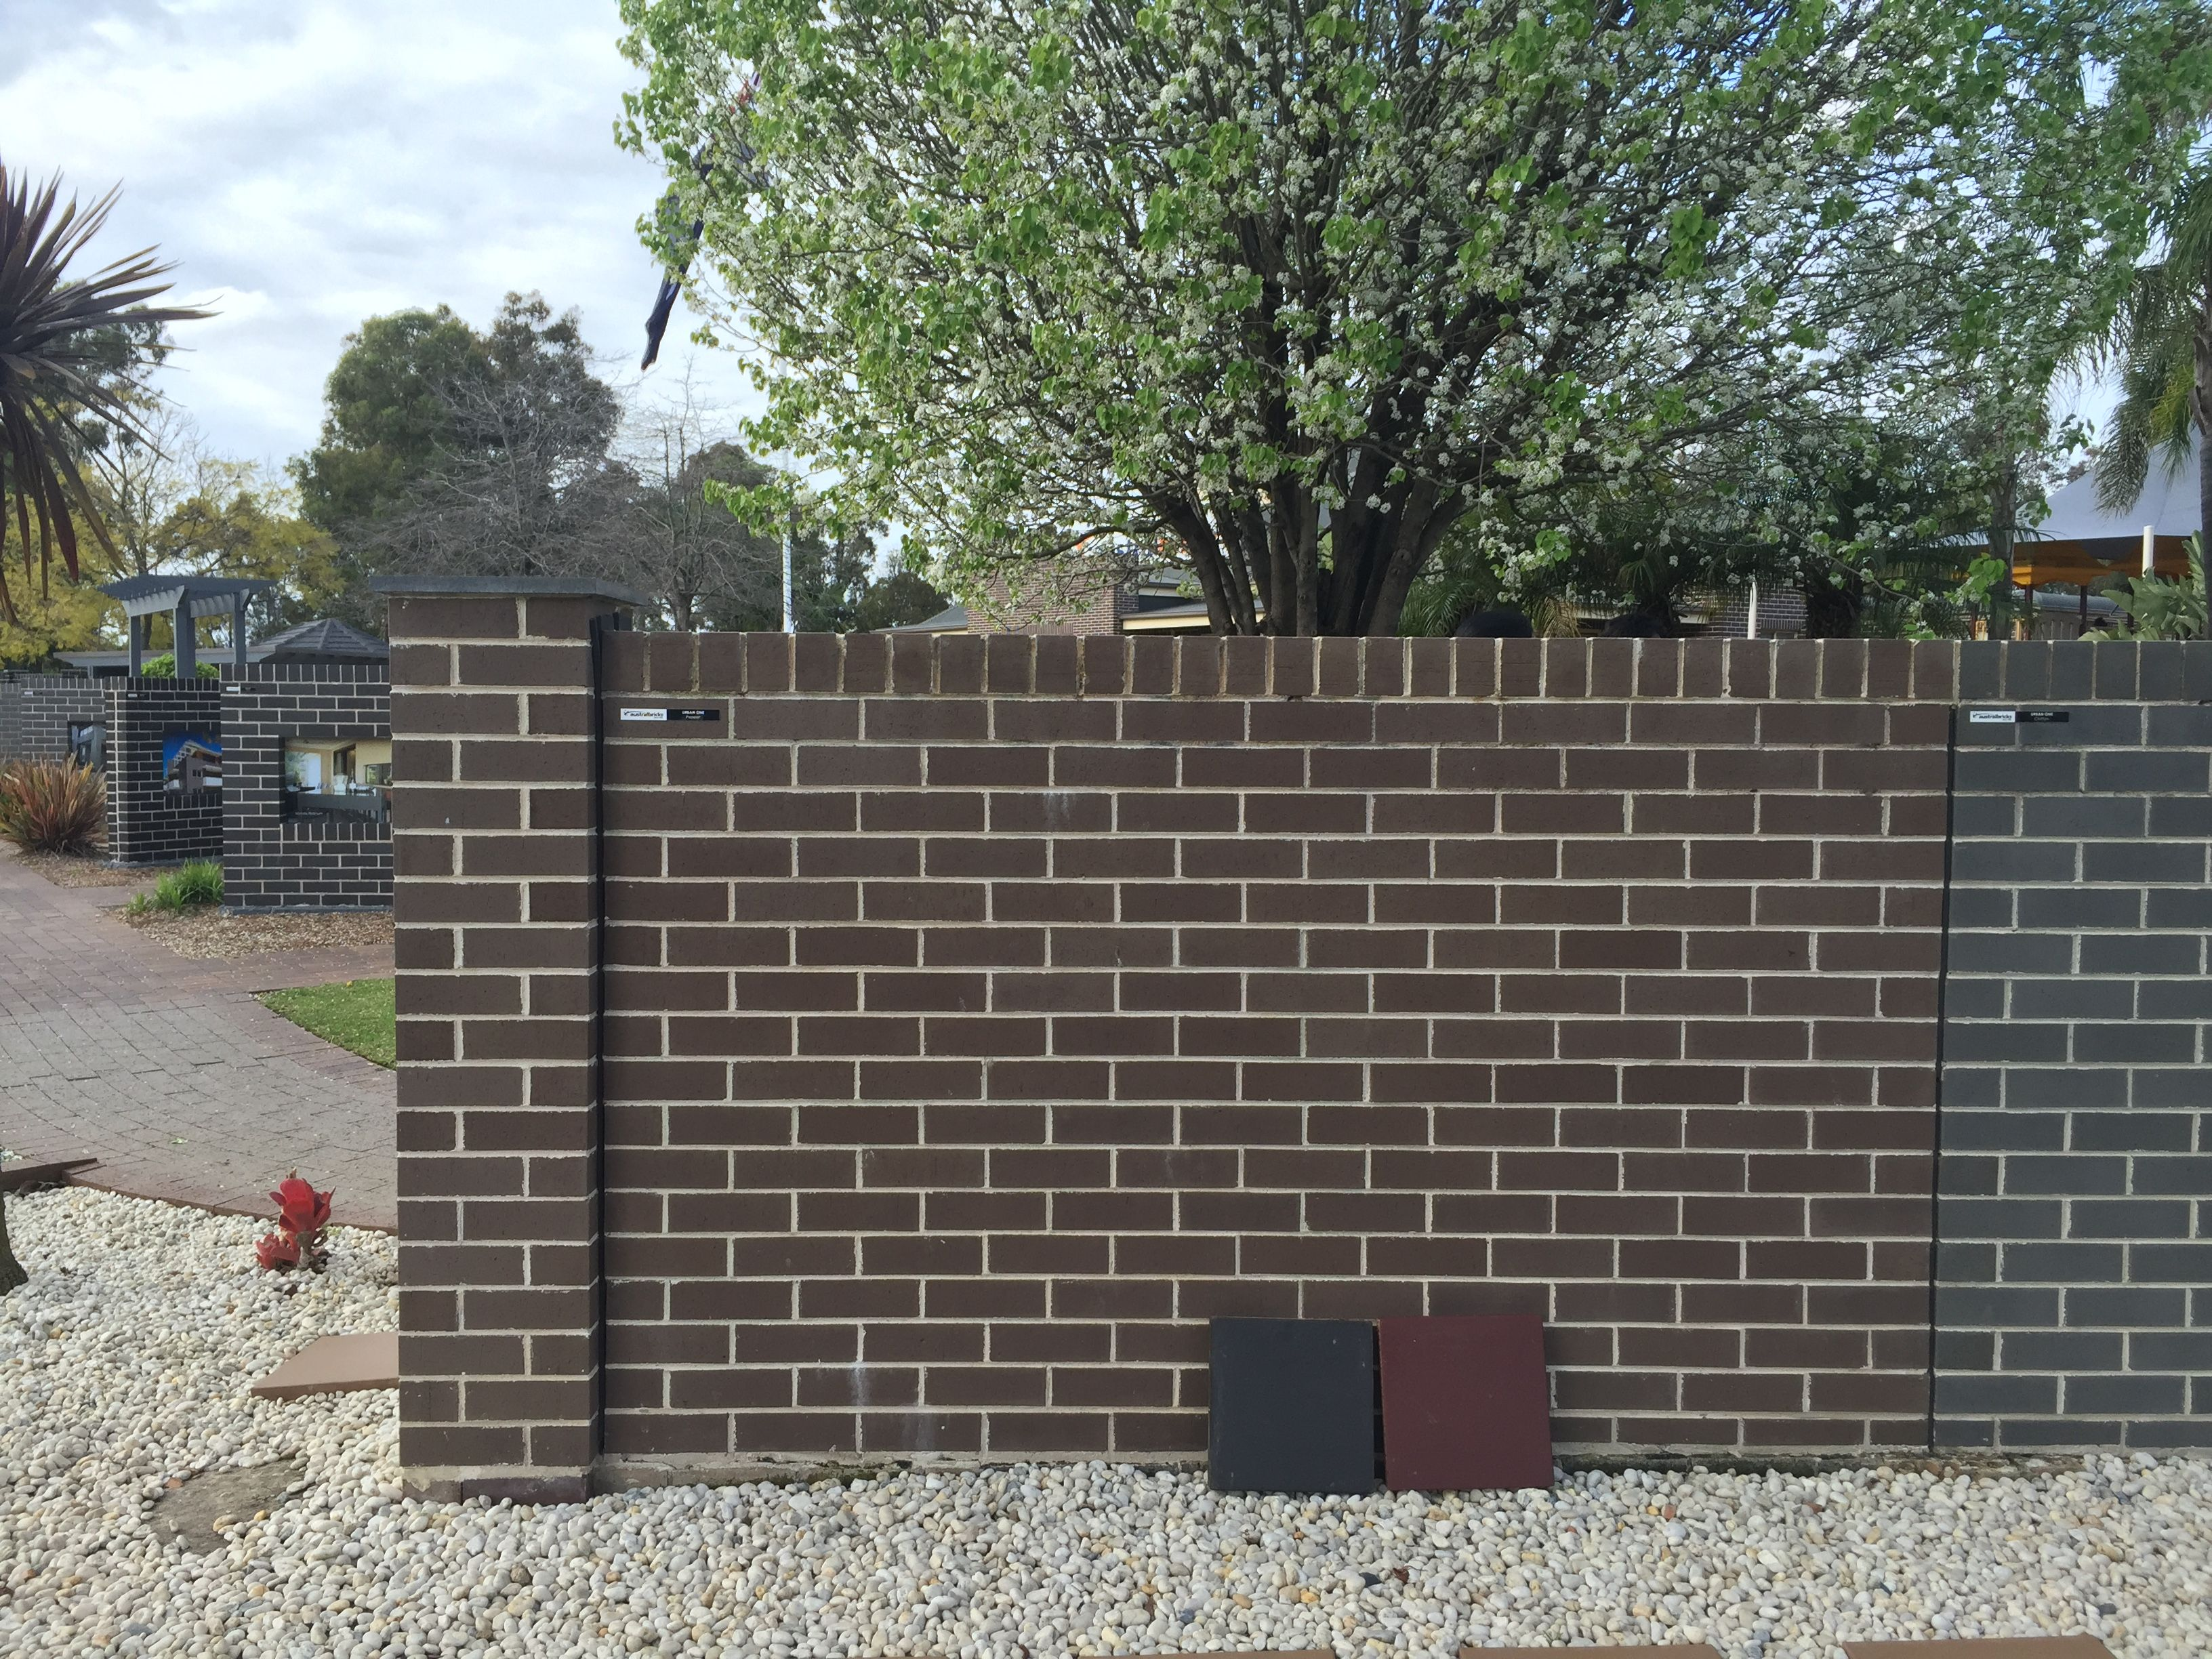 The Brick Urban One Quot Pepper Quot Brick Roof Facade House